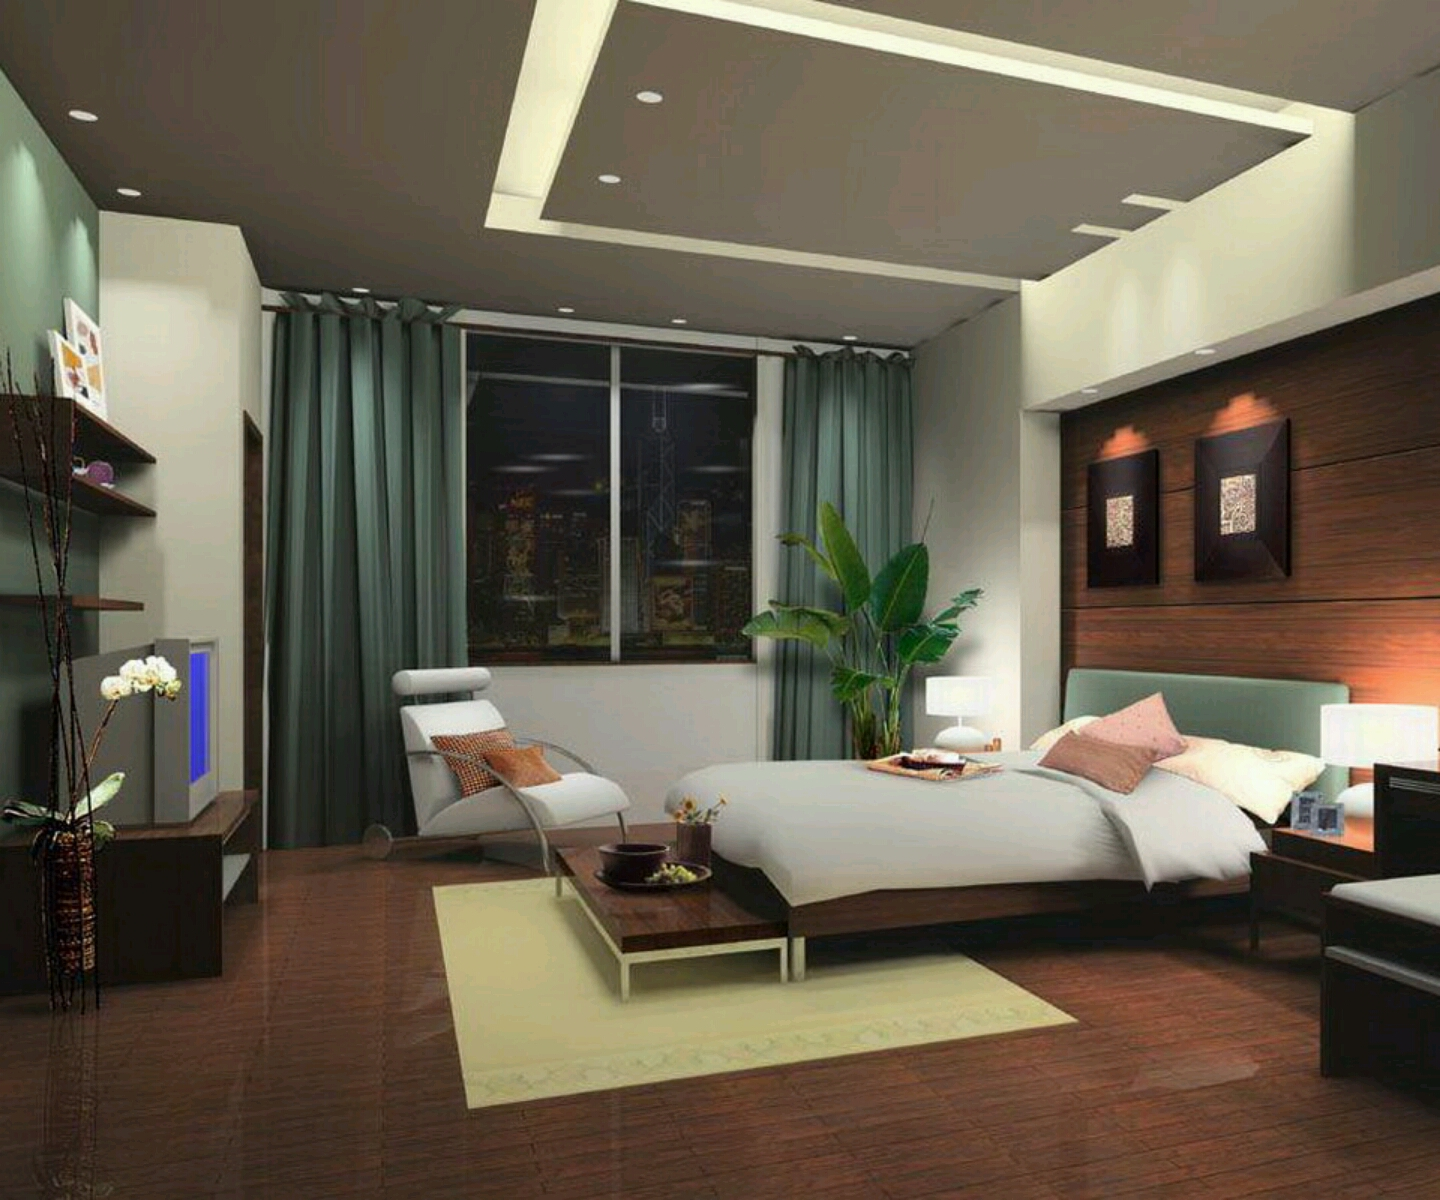 New home designs latest modern bedrooms designs best ideas for New bedroom decoration